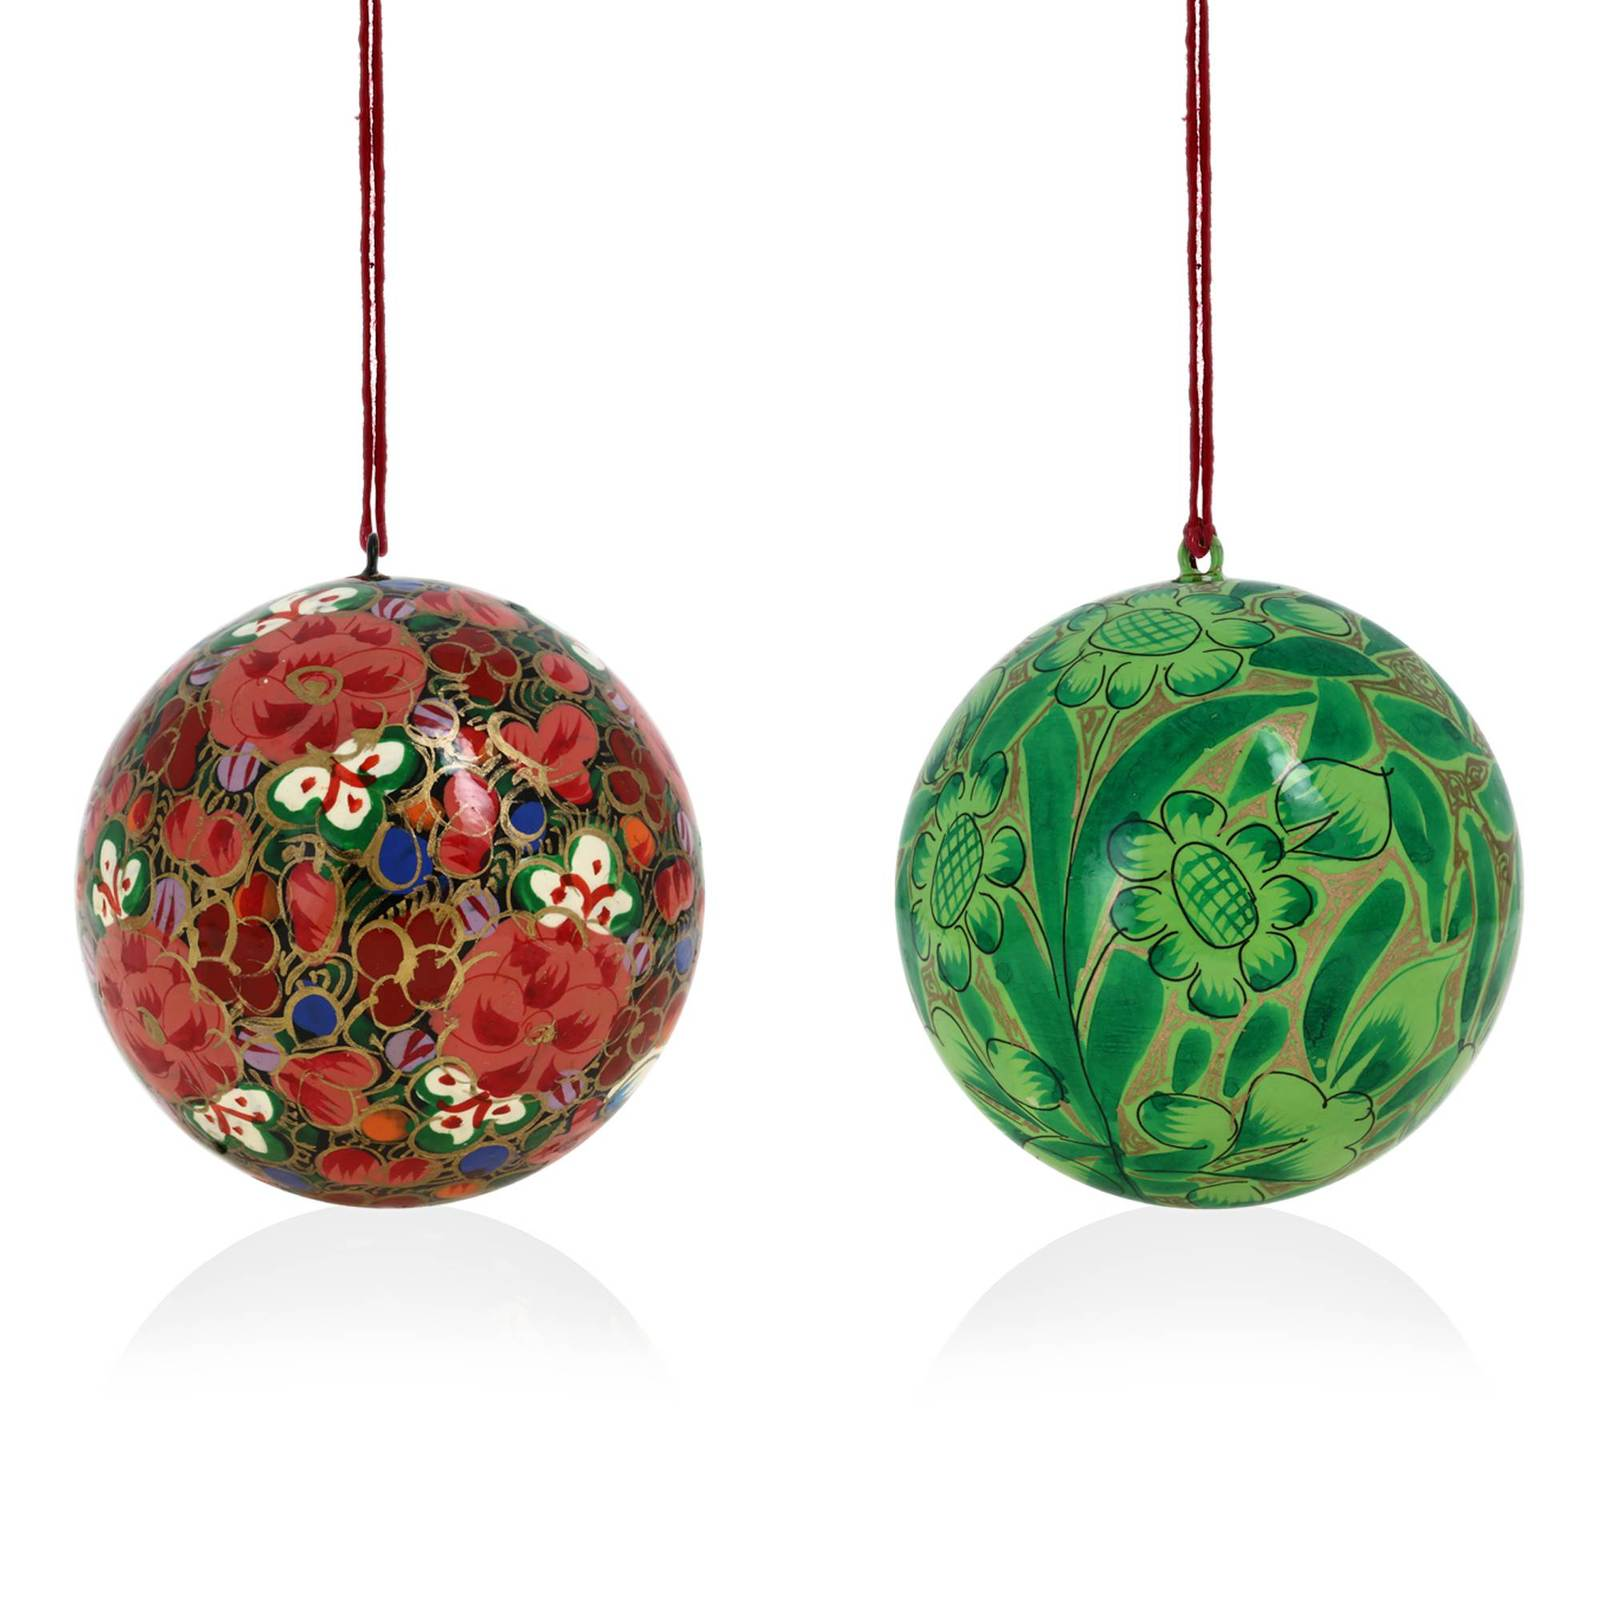 Decorative Christmas Ball Ornaments: Decoration Christmas Ornaments Handmade Paper Mache